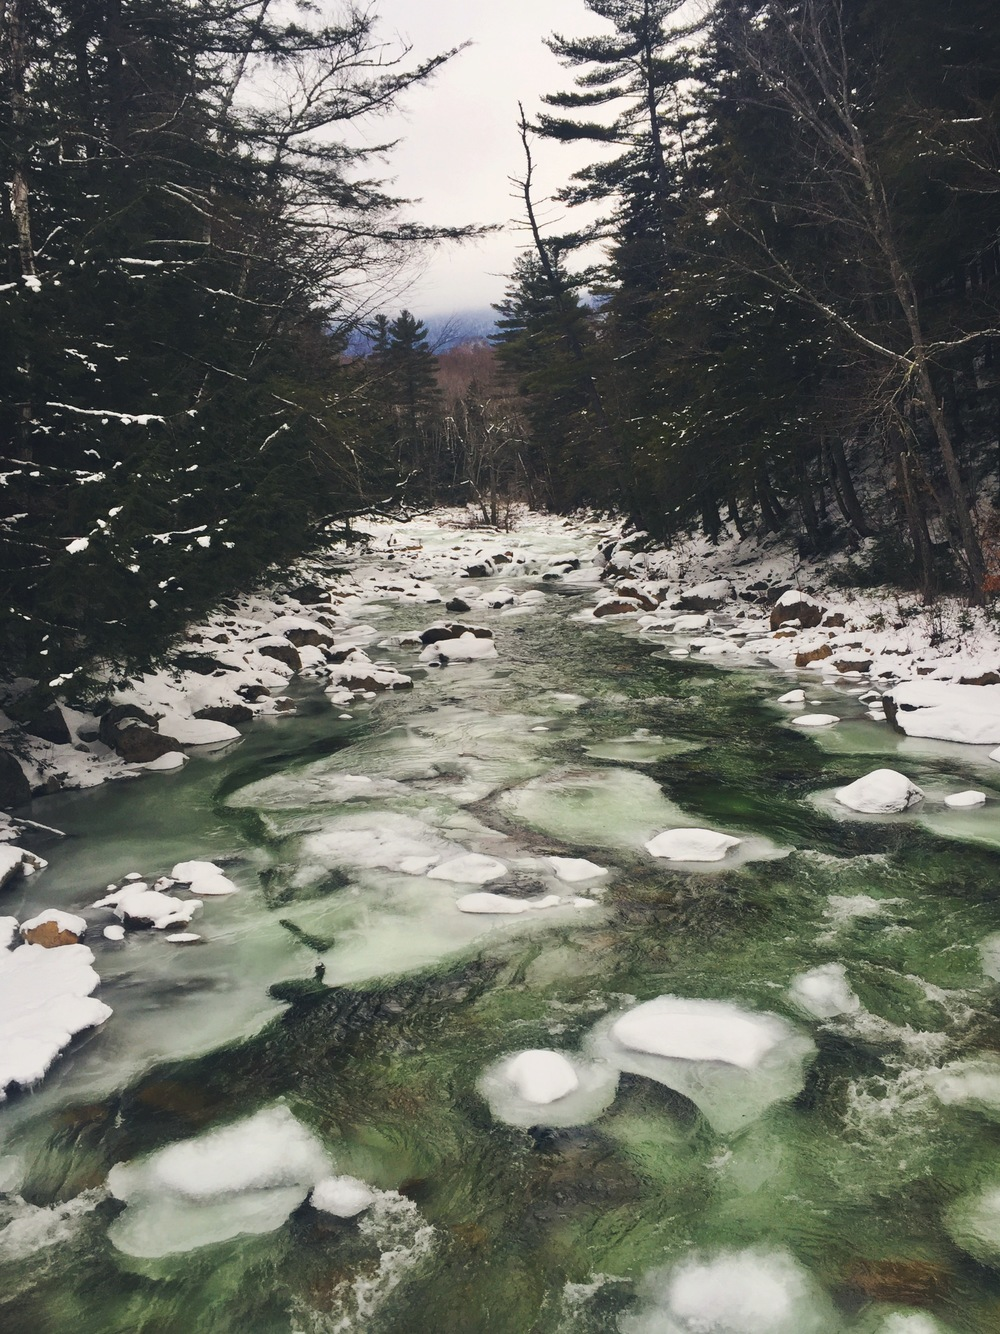 The chilled green waters of the Pemigewasset River